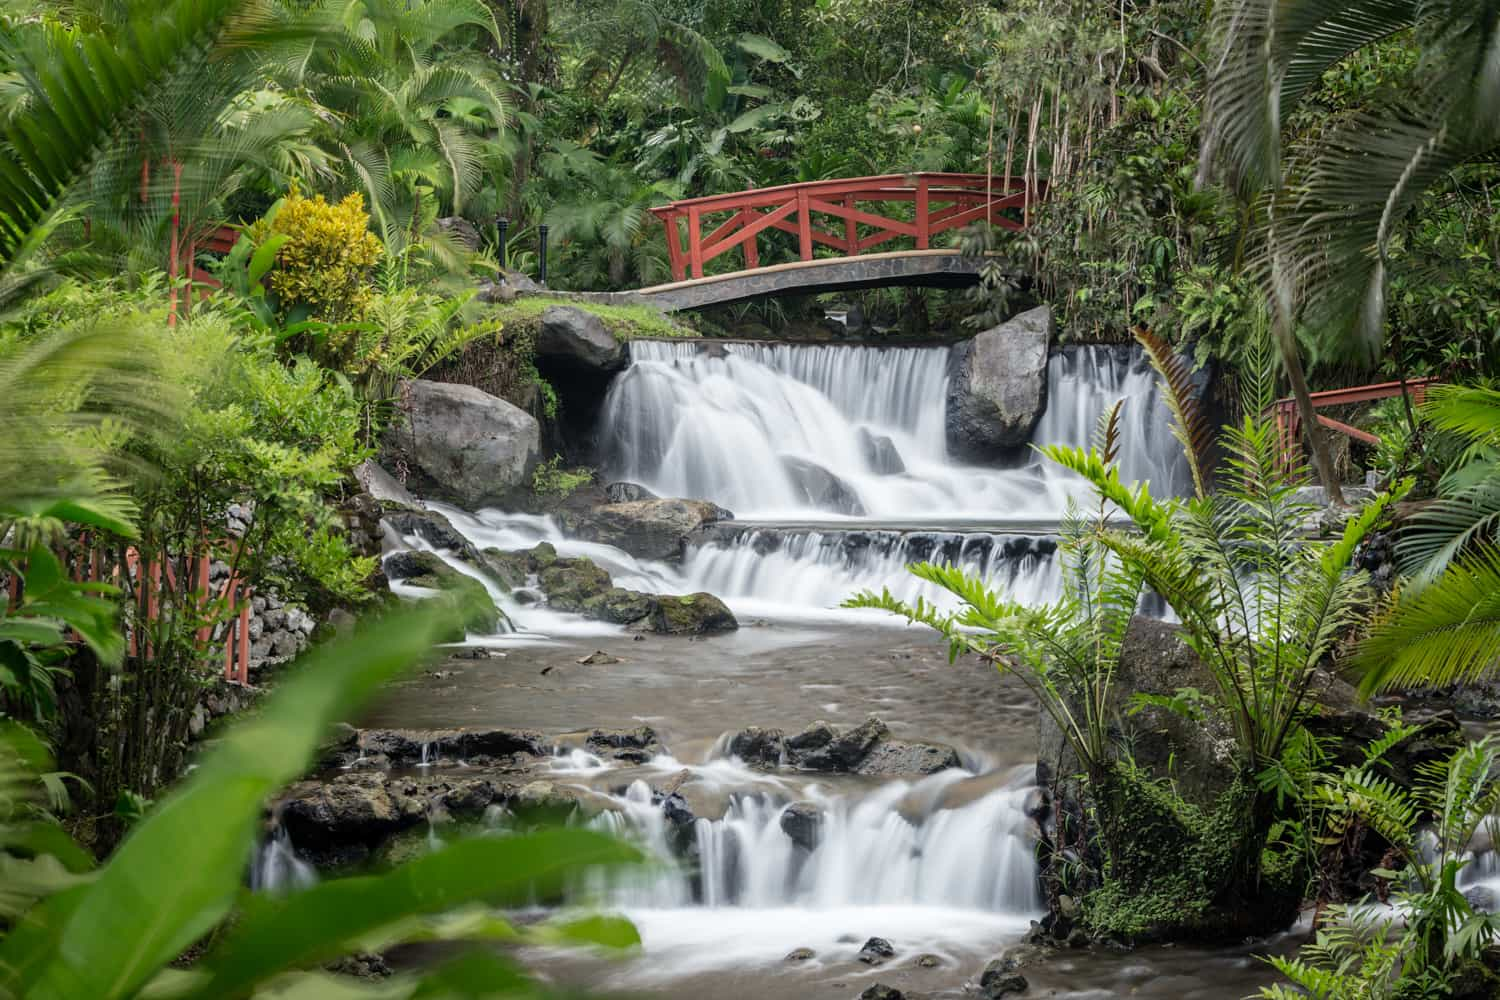 Red wooden bride for elopements over waterfalls at Tabacon Resort.